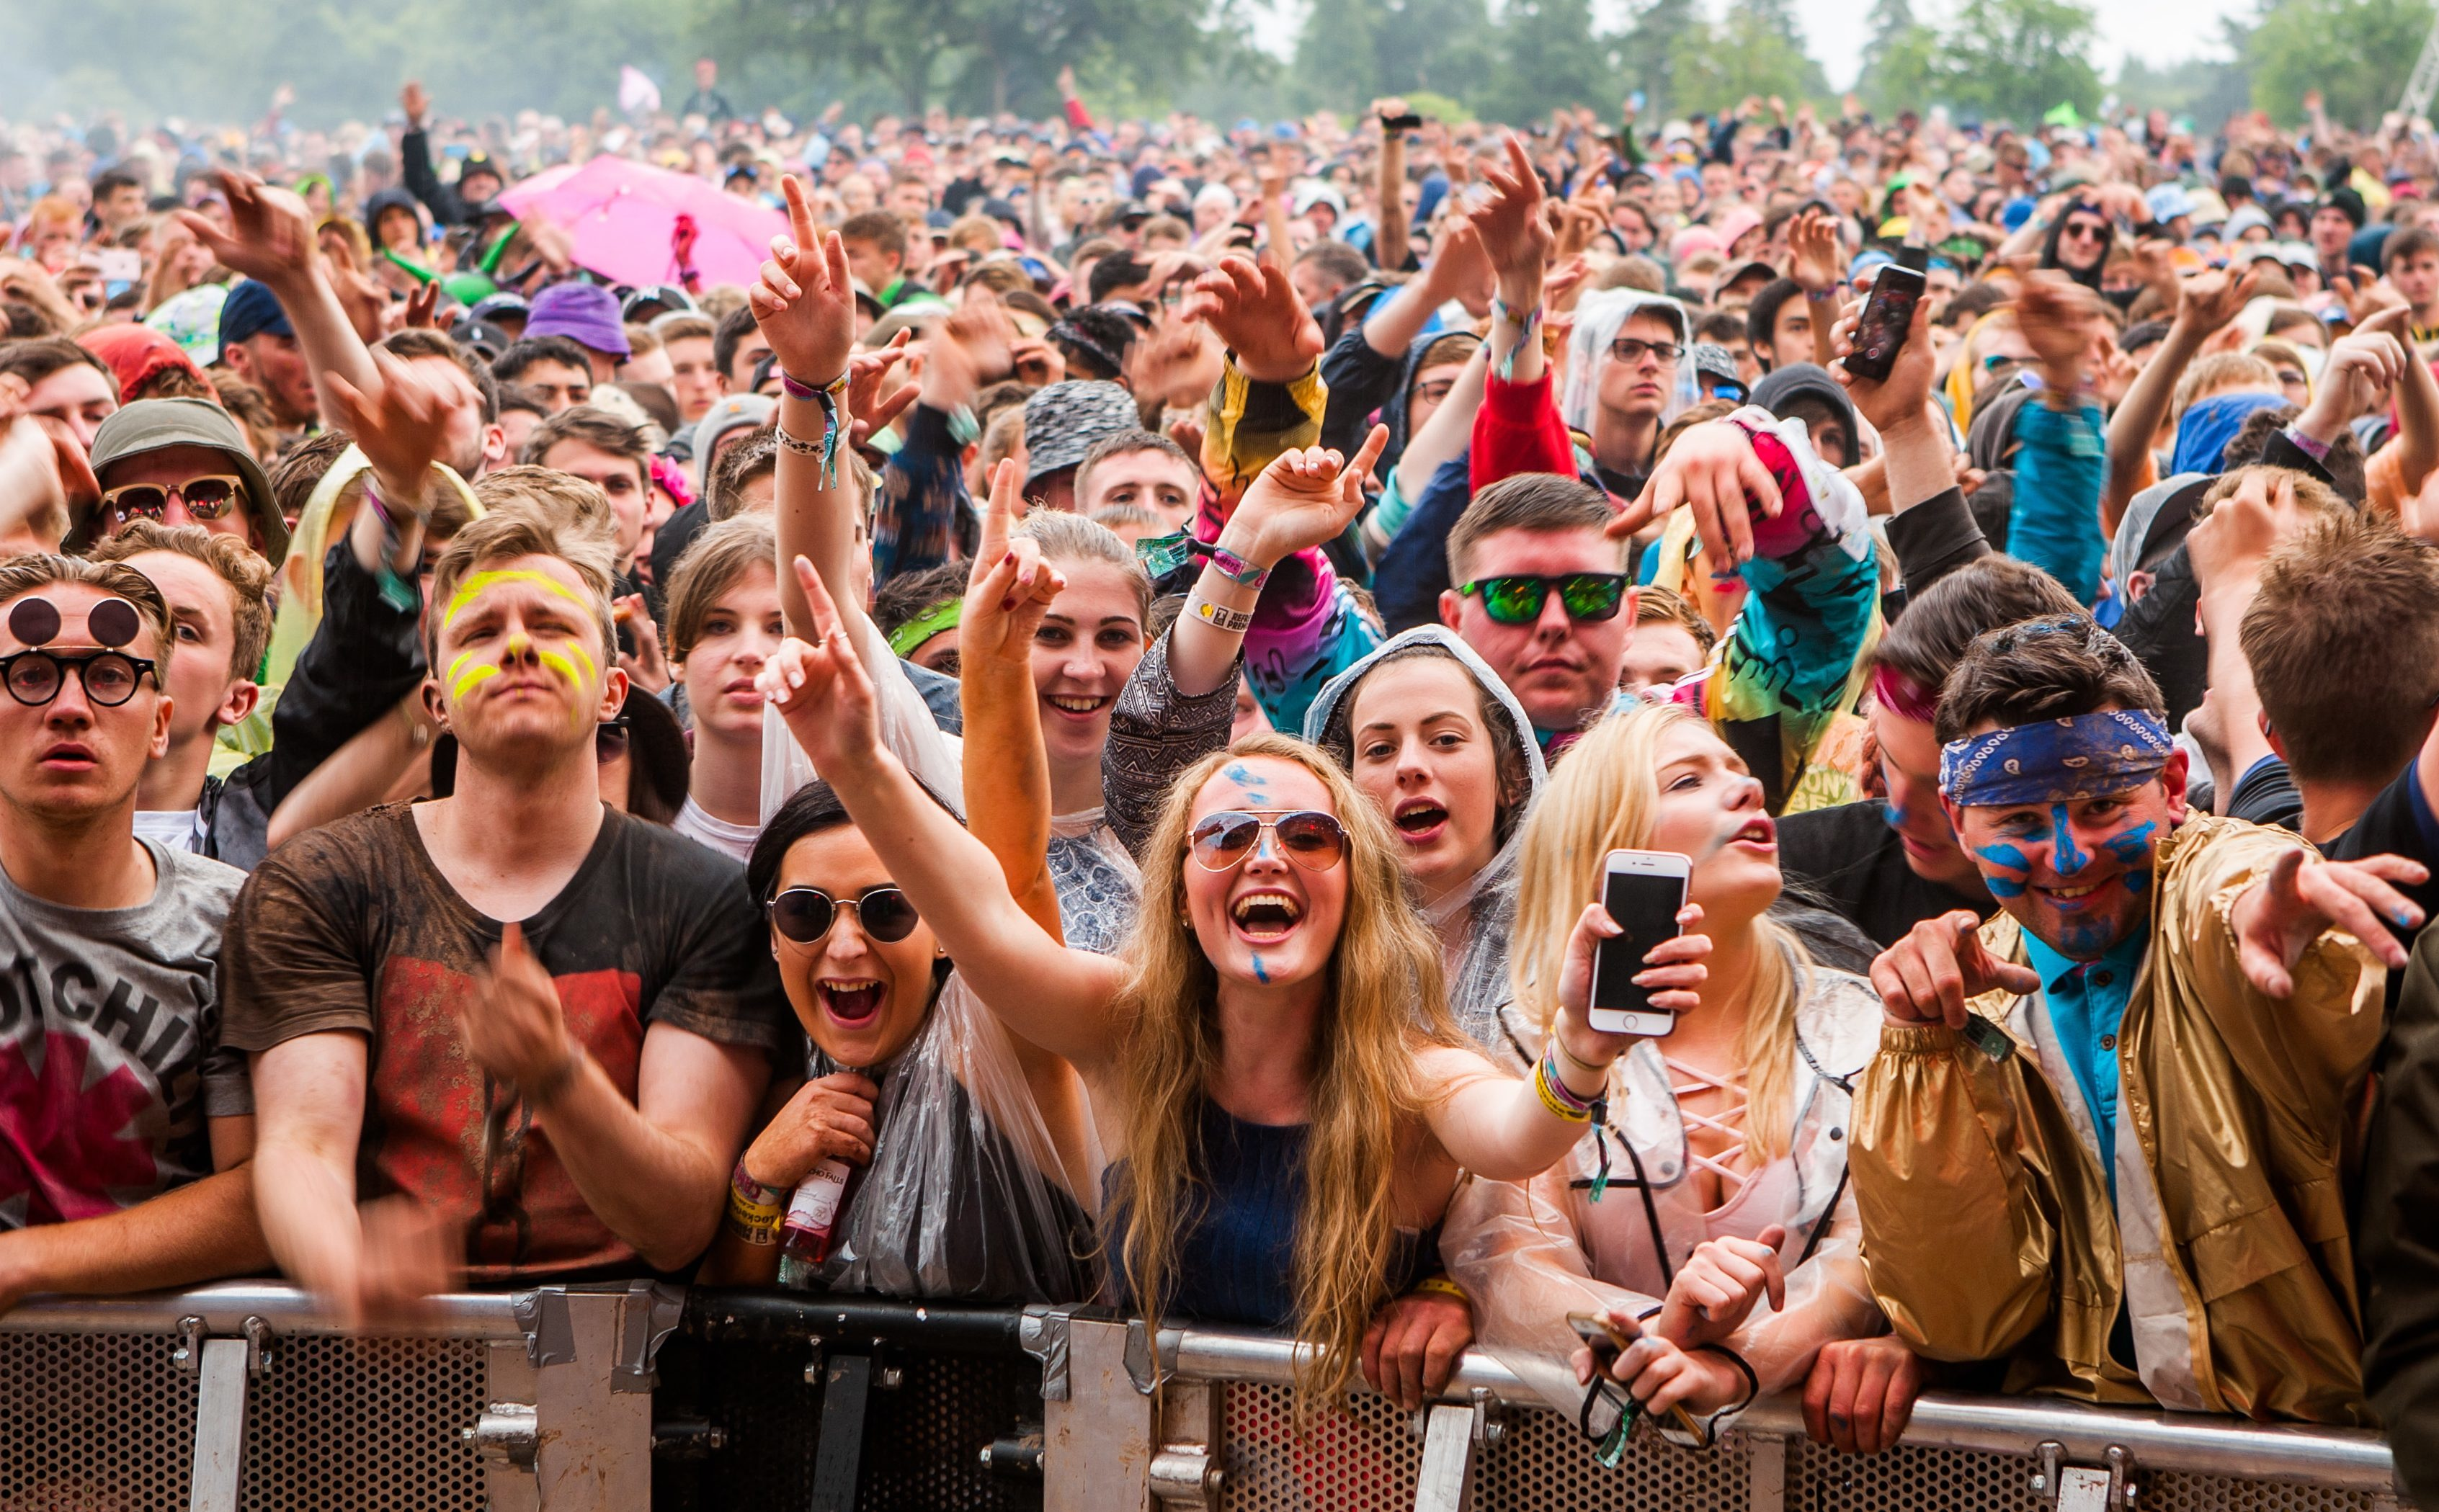 Despite the weather, T in the Park still drew in the crowds.